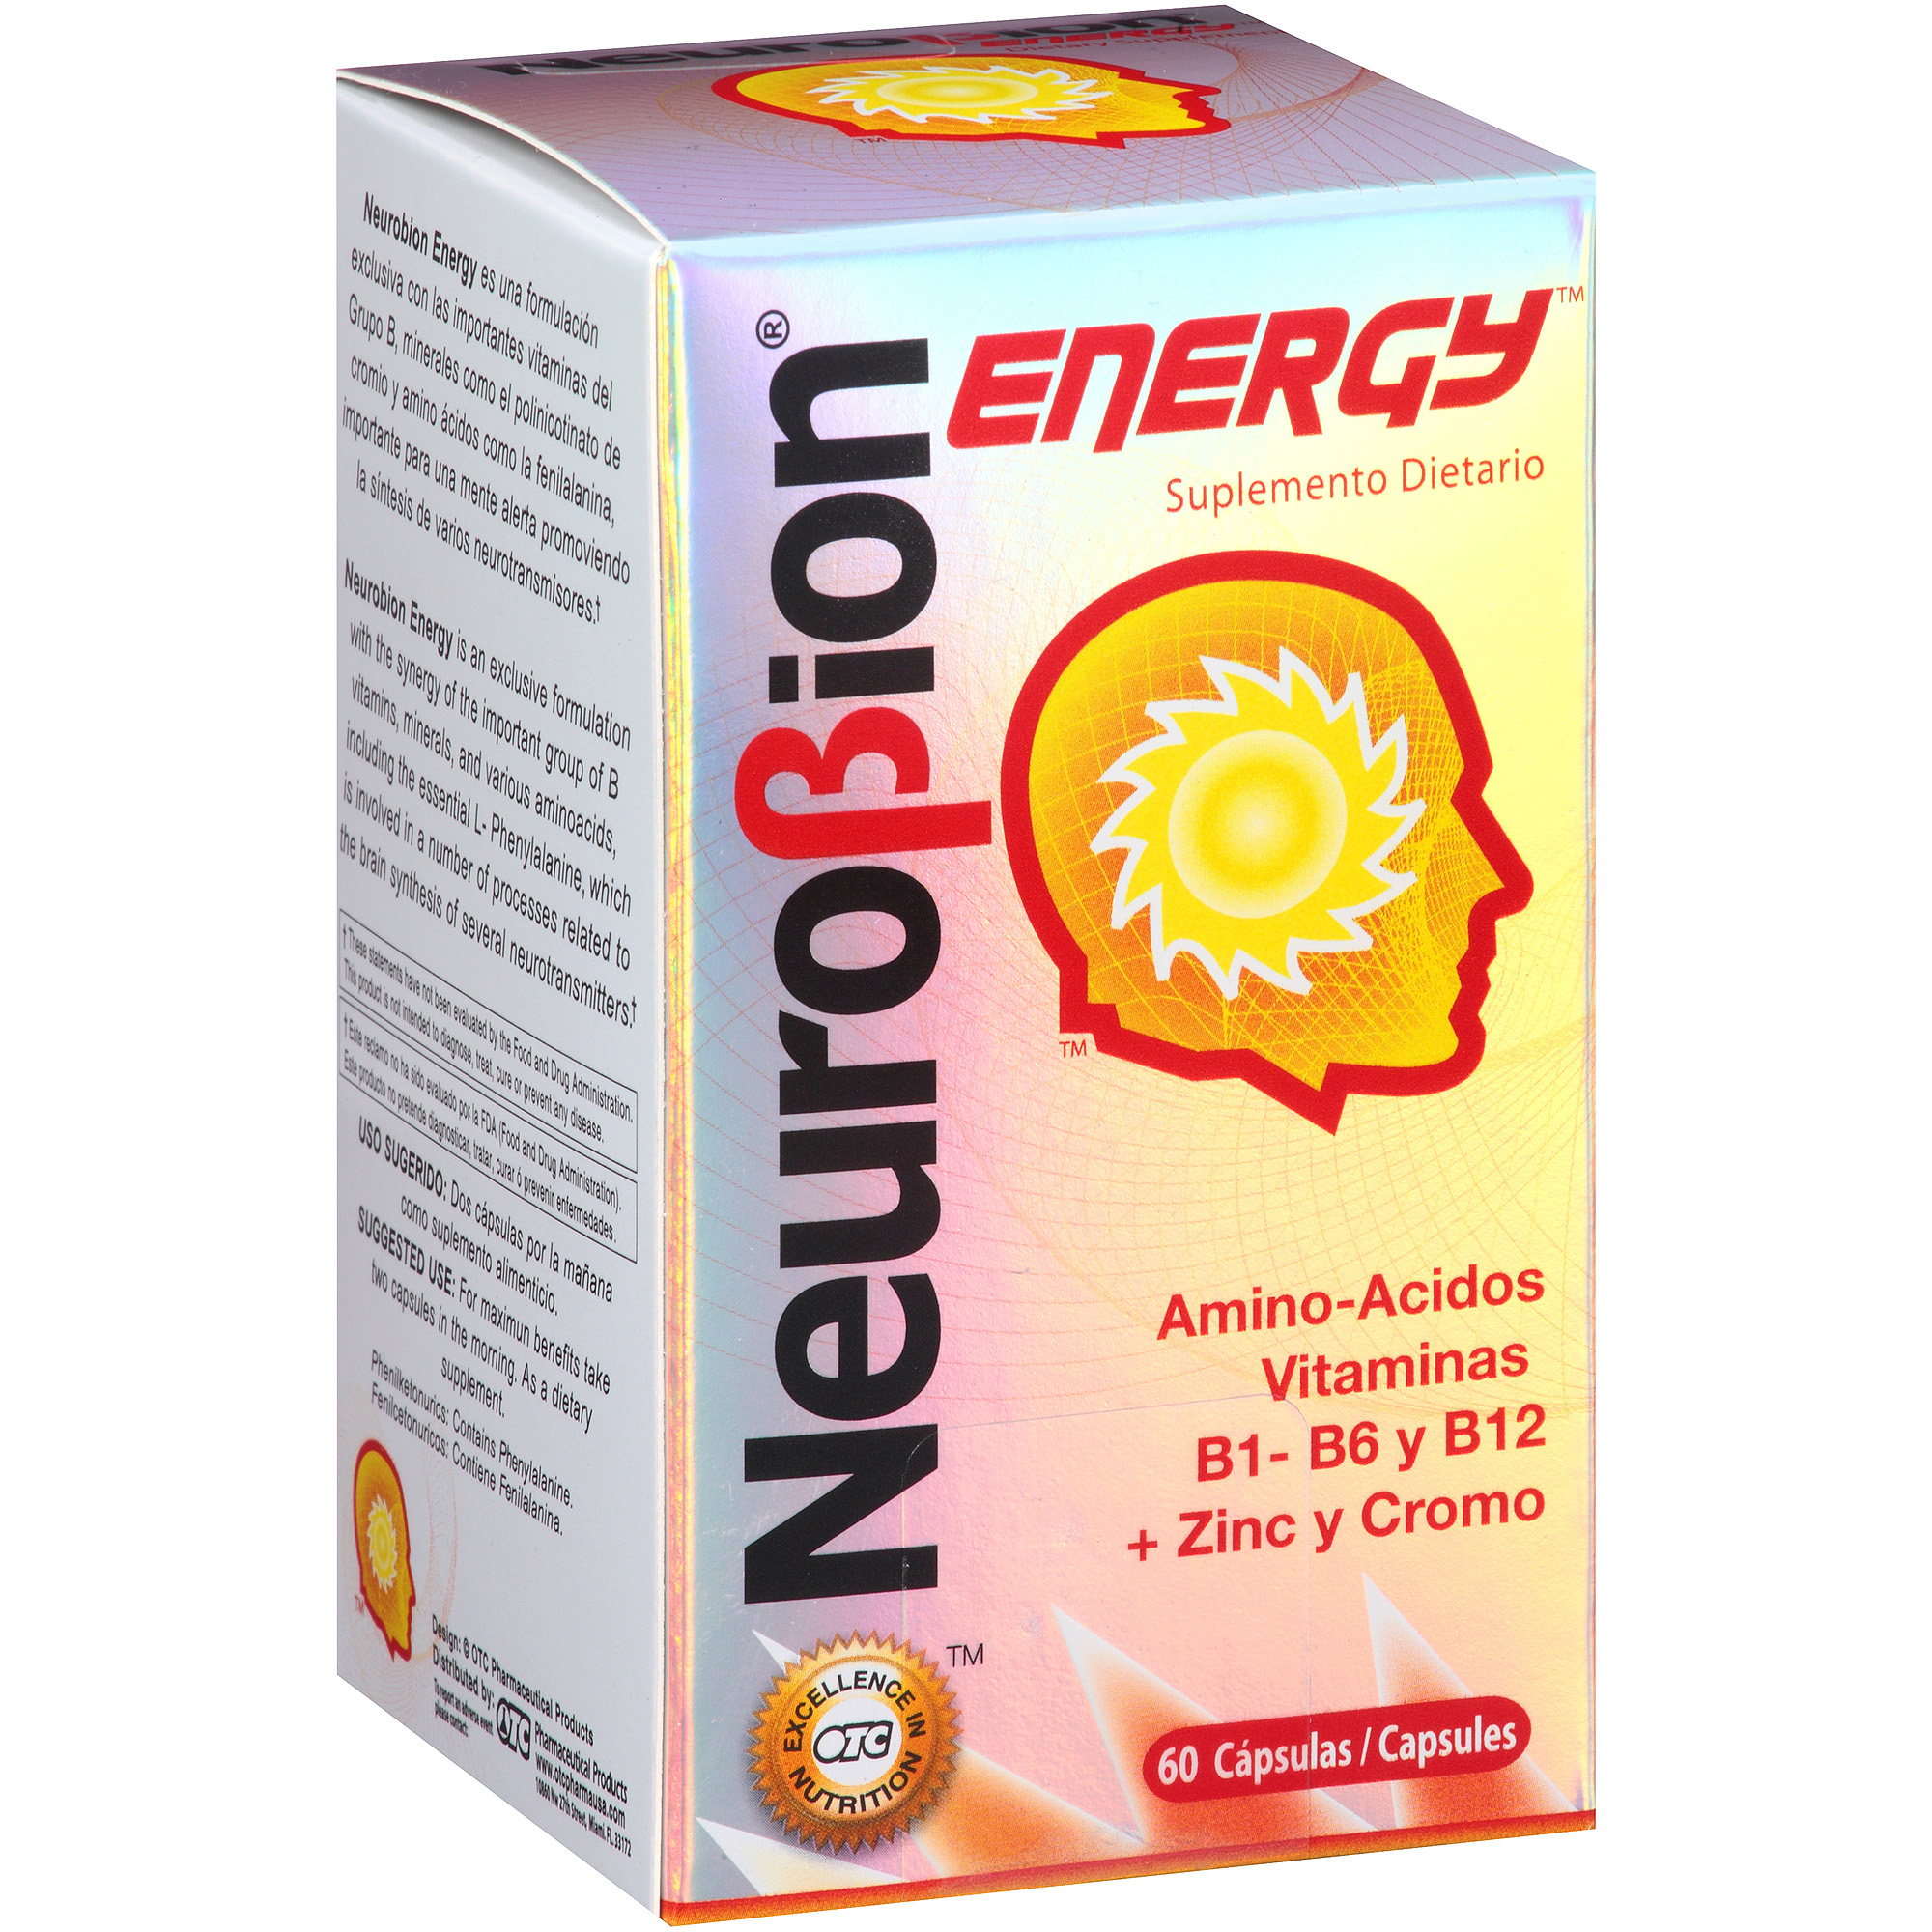 Neurobion Energy Dietary Supplement Capsules, 60 count